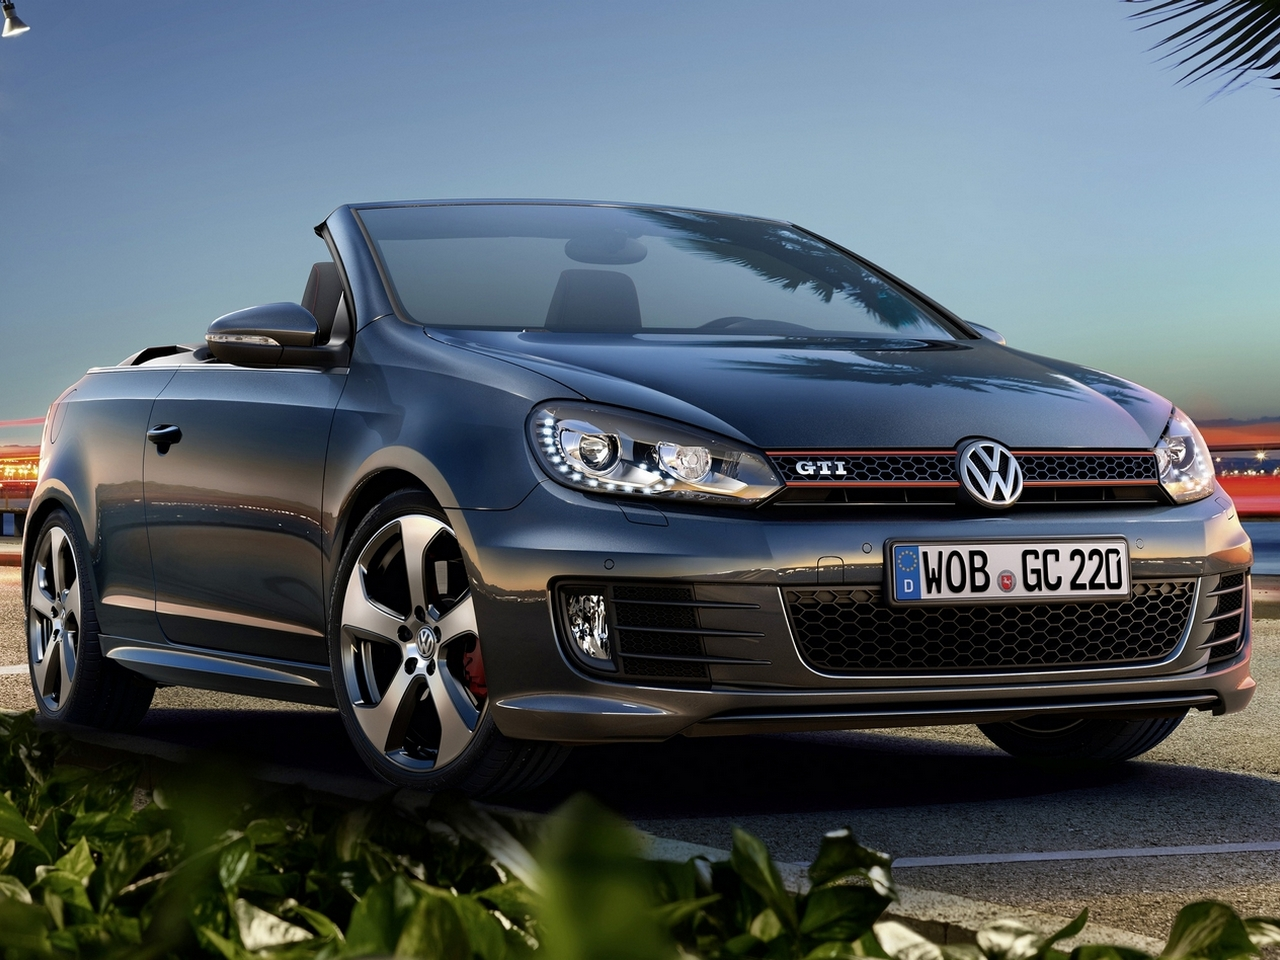 2019 Volkswagen Golf GTI Cabriolet photo - 4